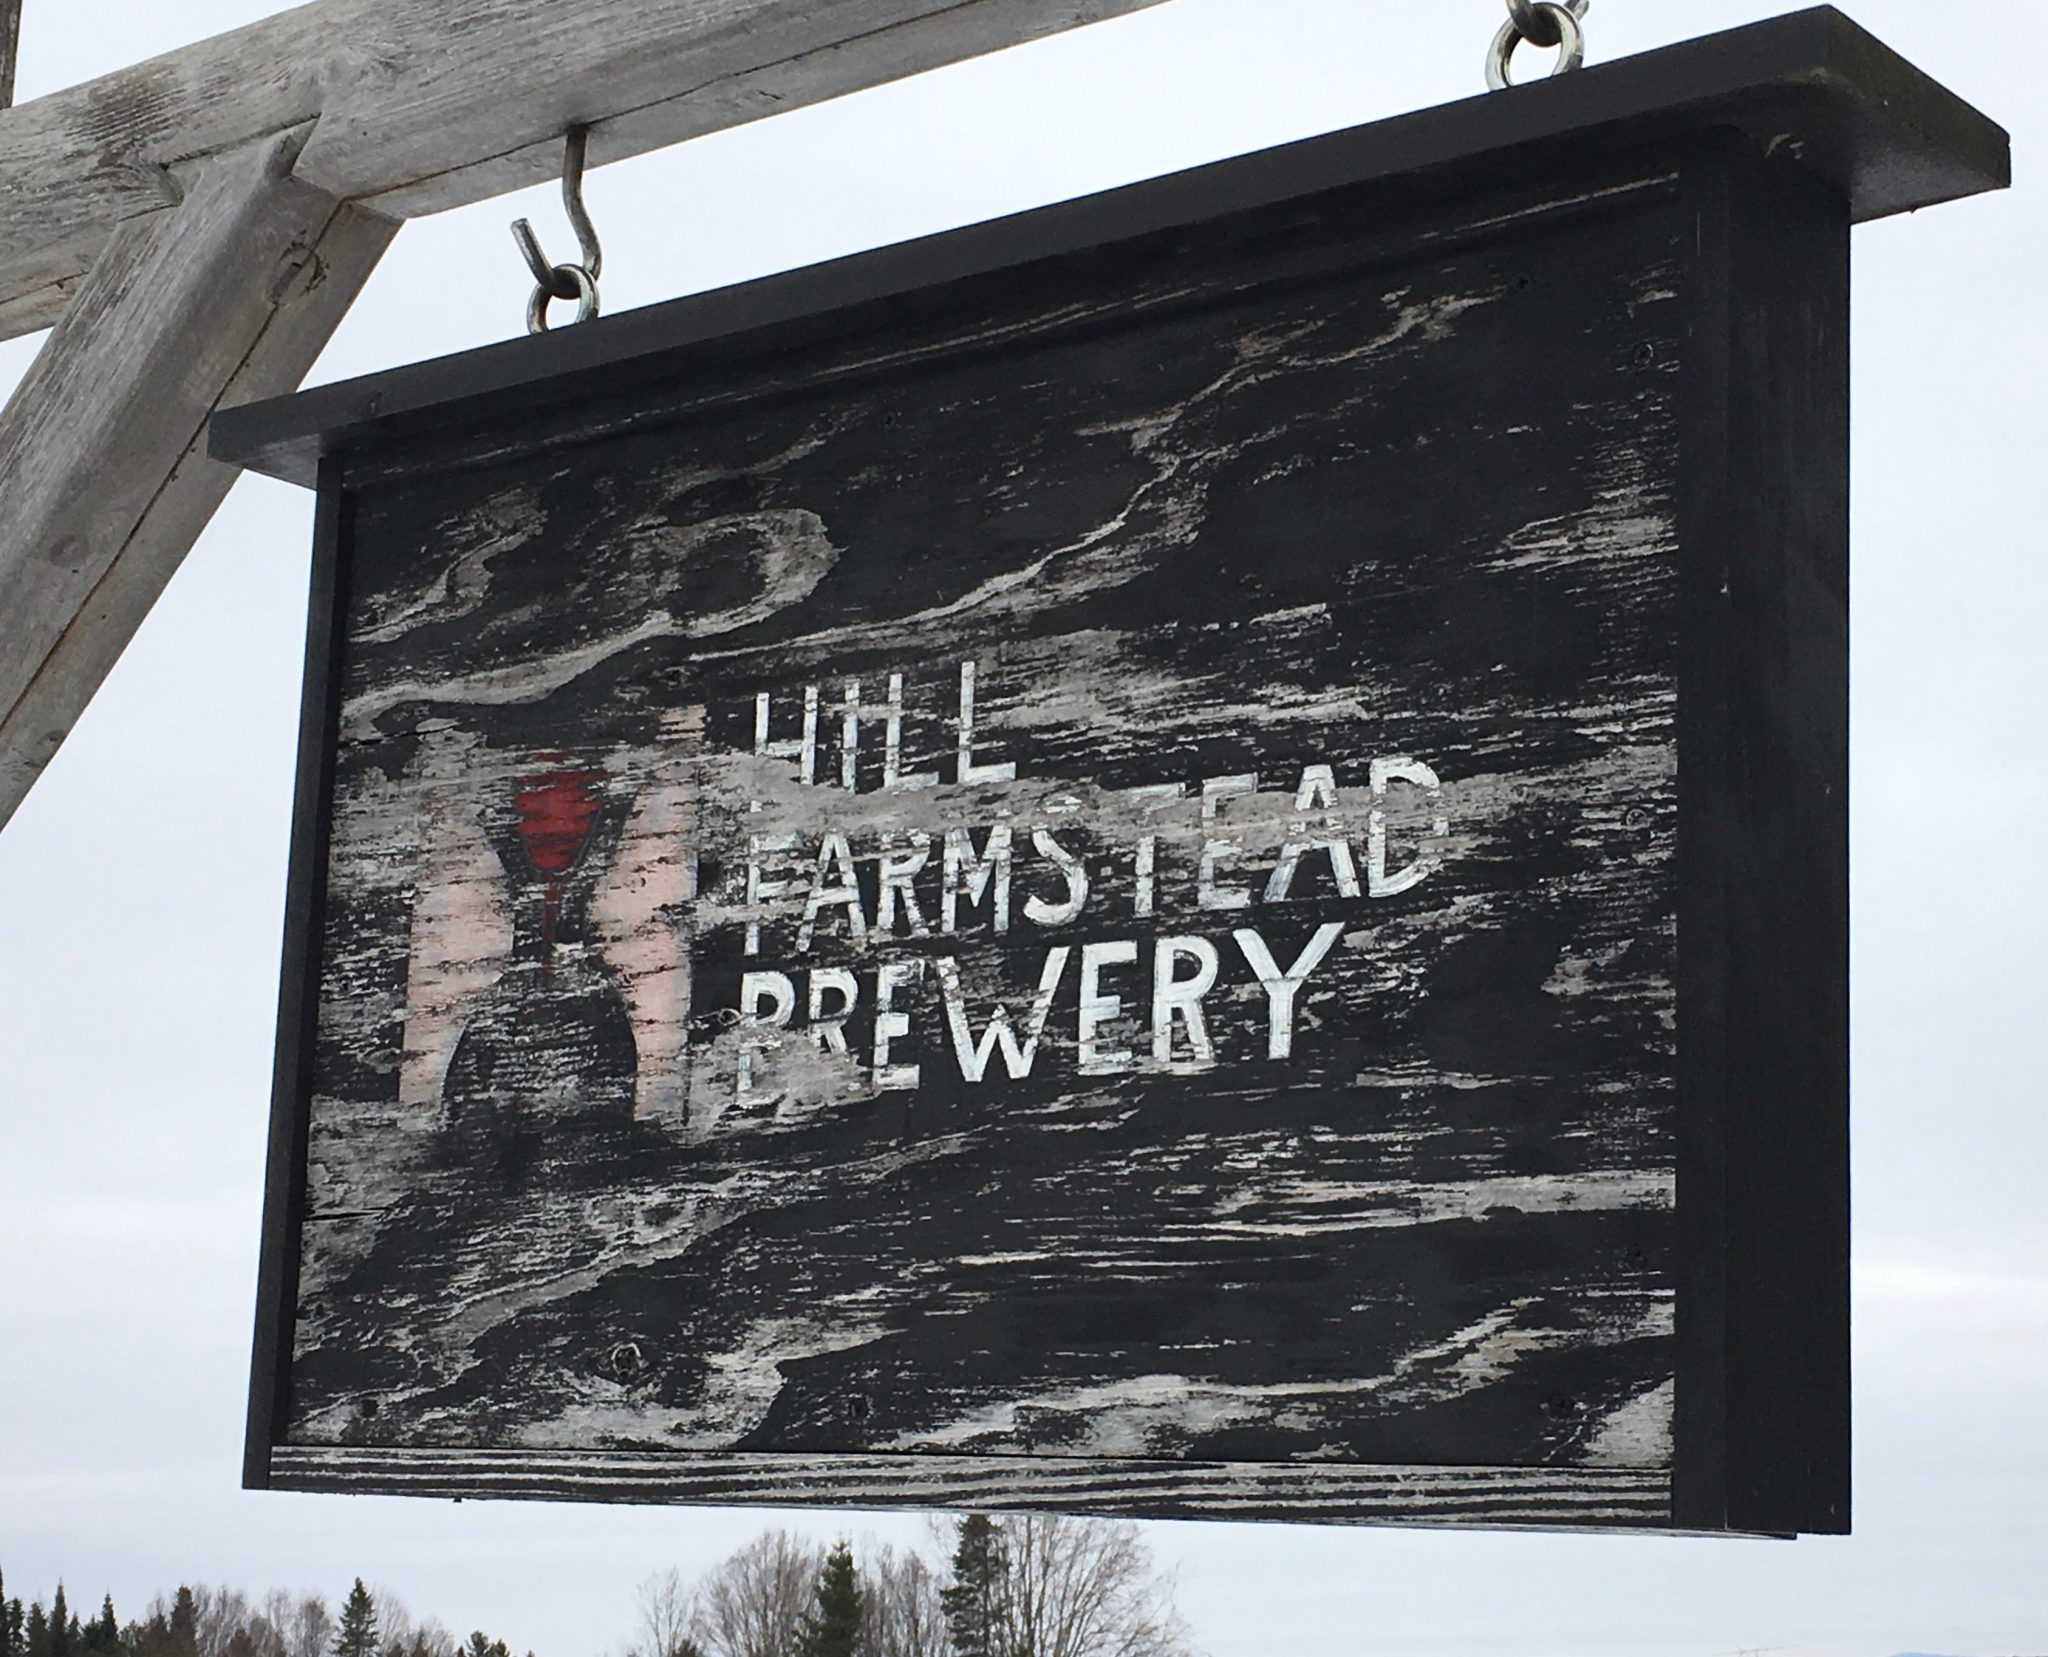 Hill Farmstead Brewery